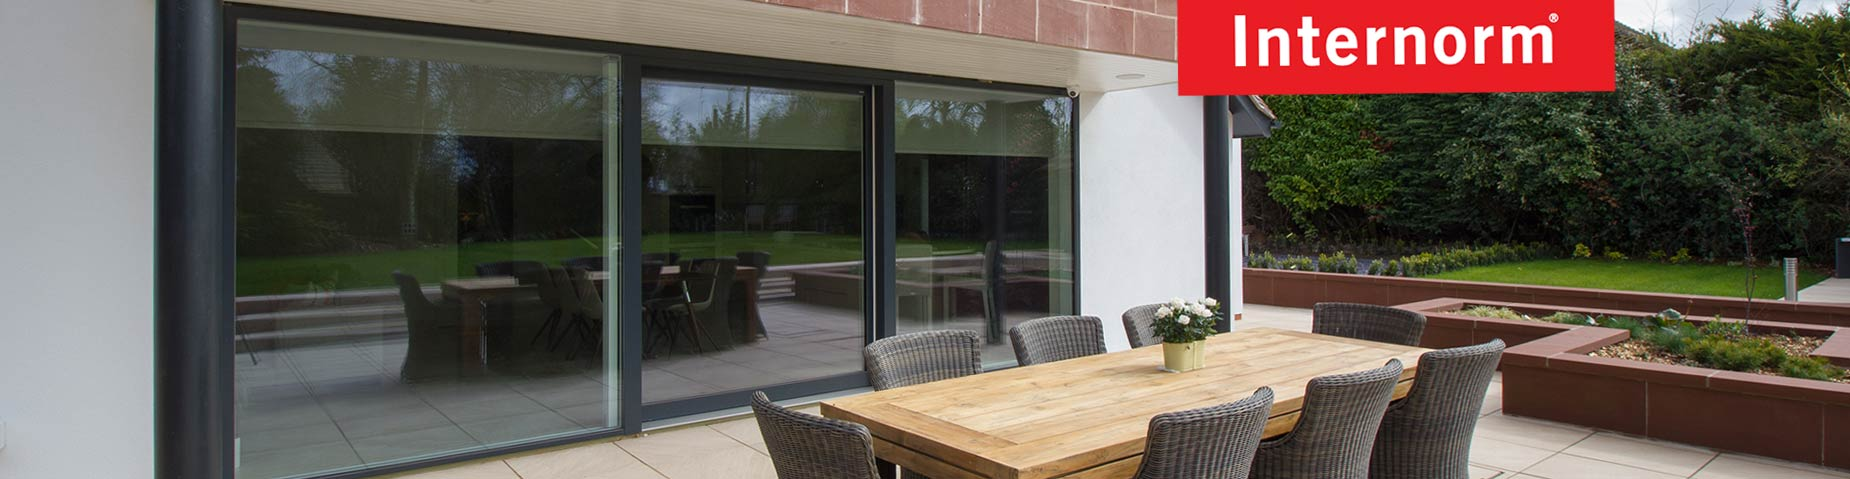 Internorm Sliding Door, HS 330